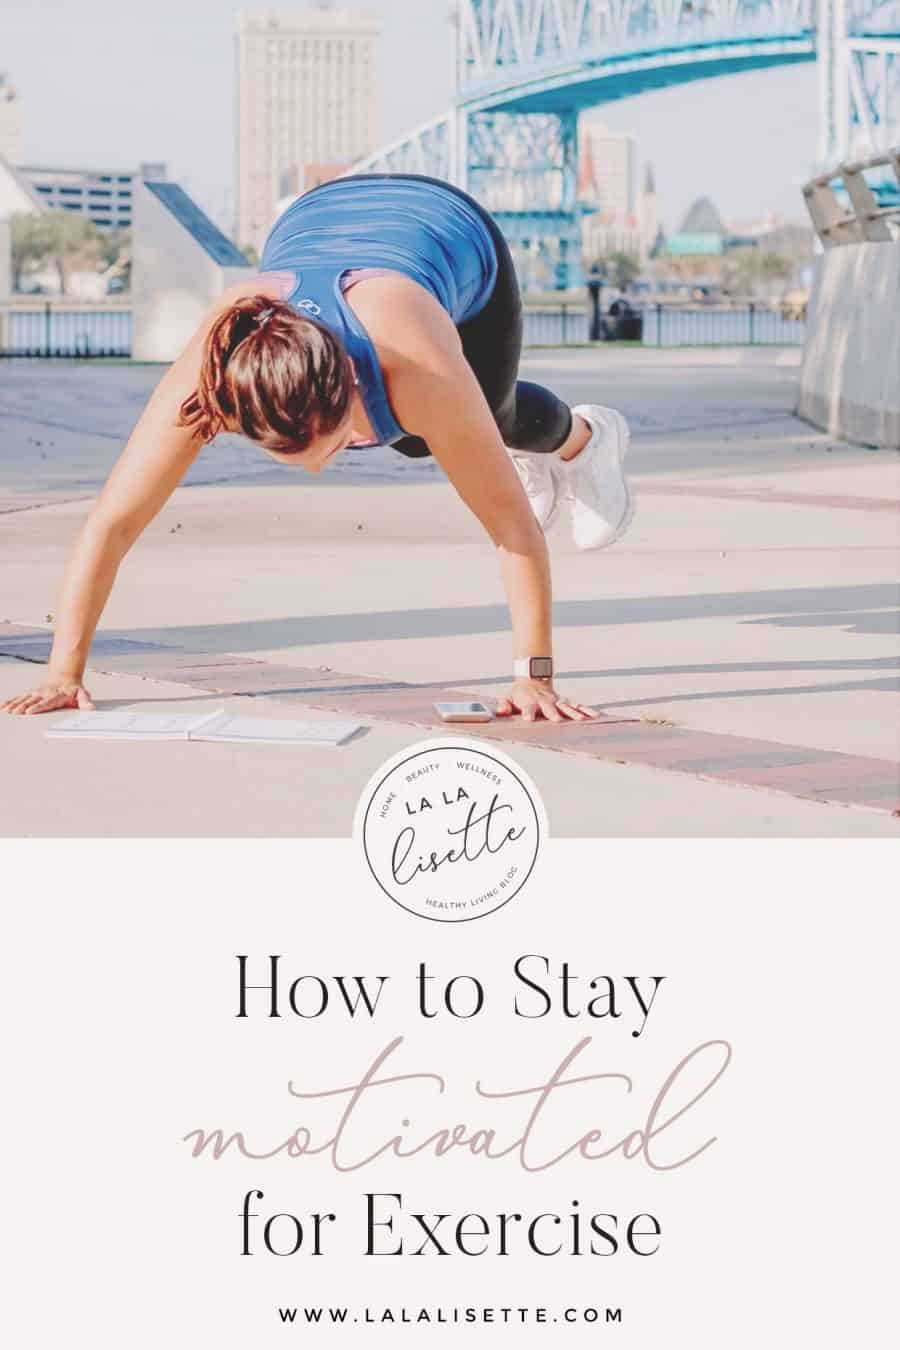 How to Stay Motivated for Exercise